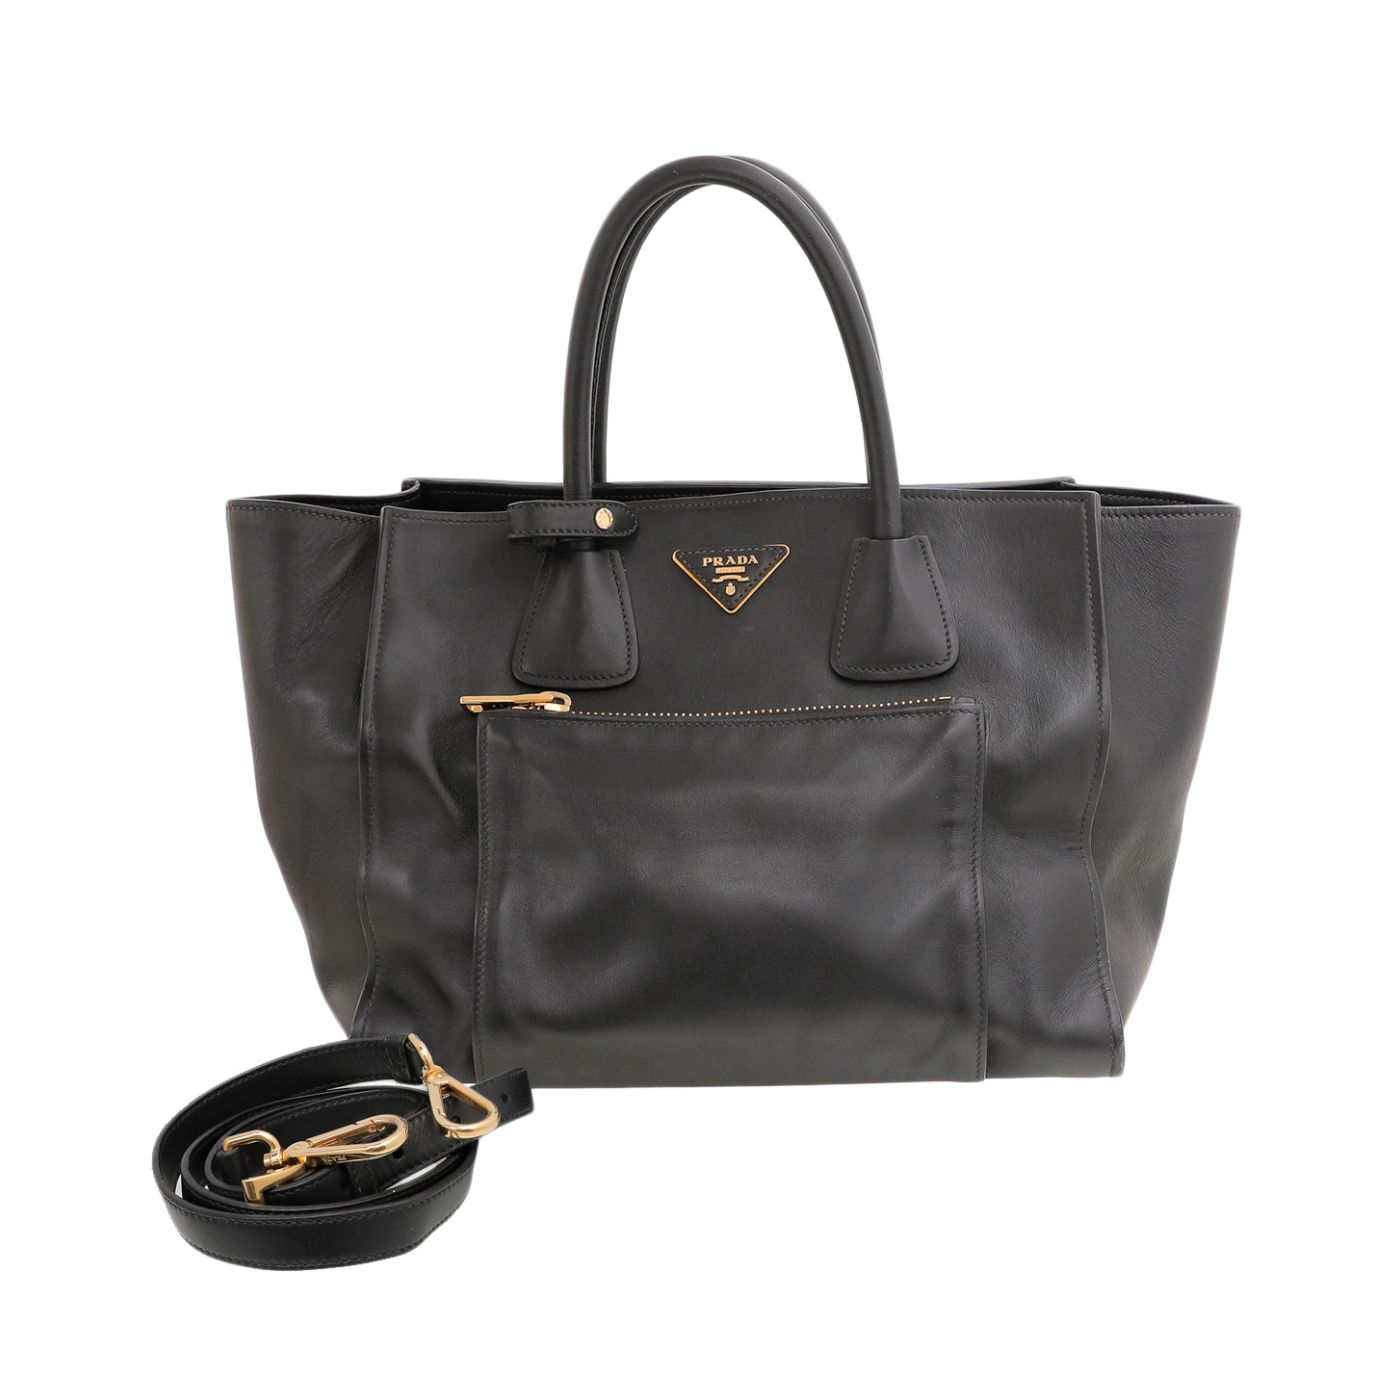 Prada Nero Soft Double Handle Tote Bag